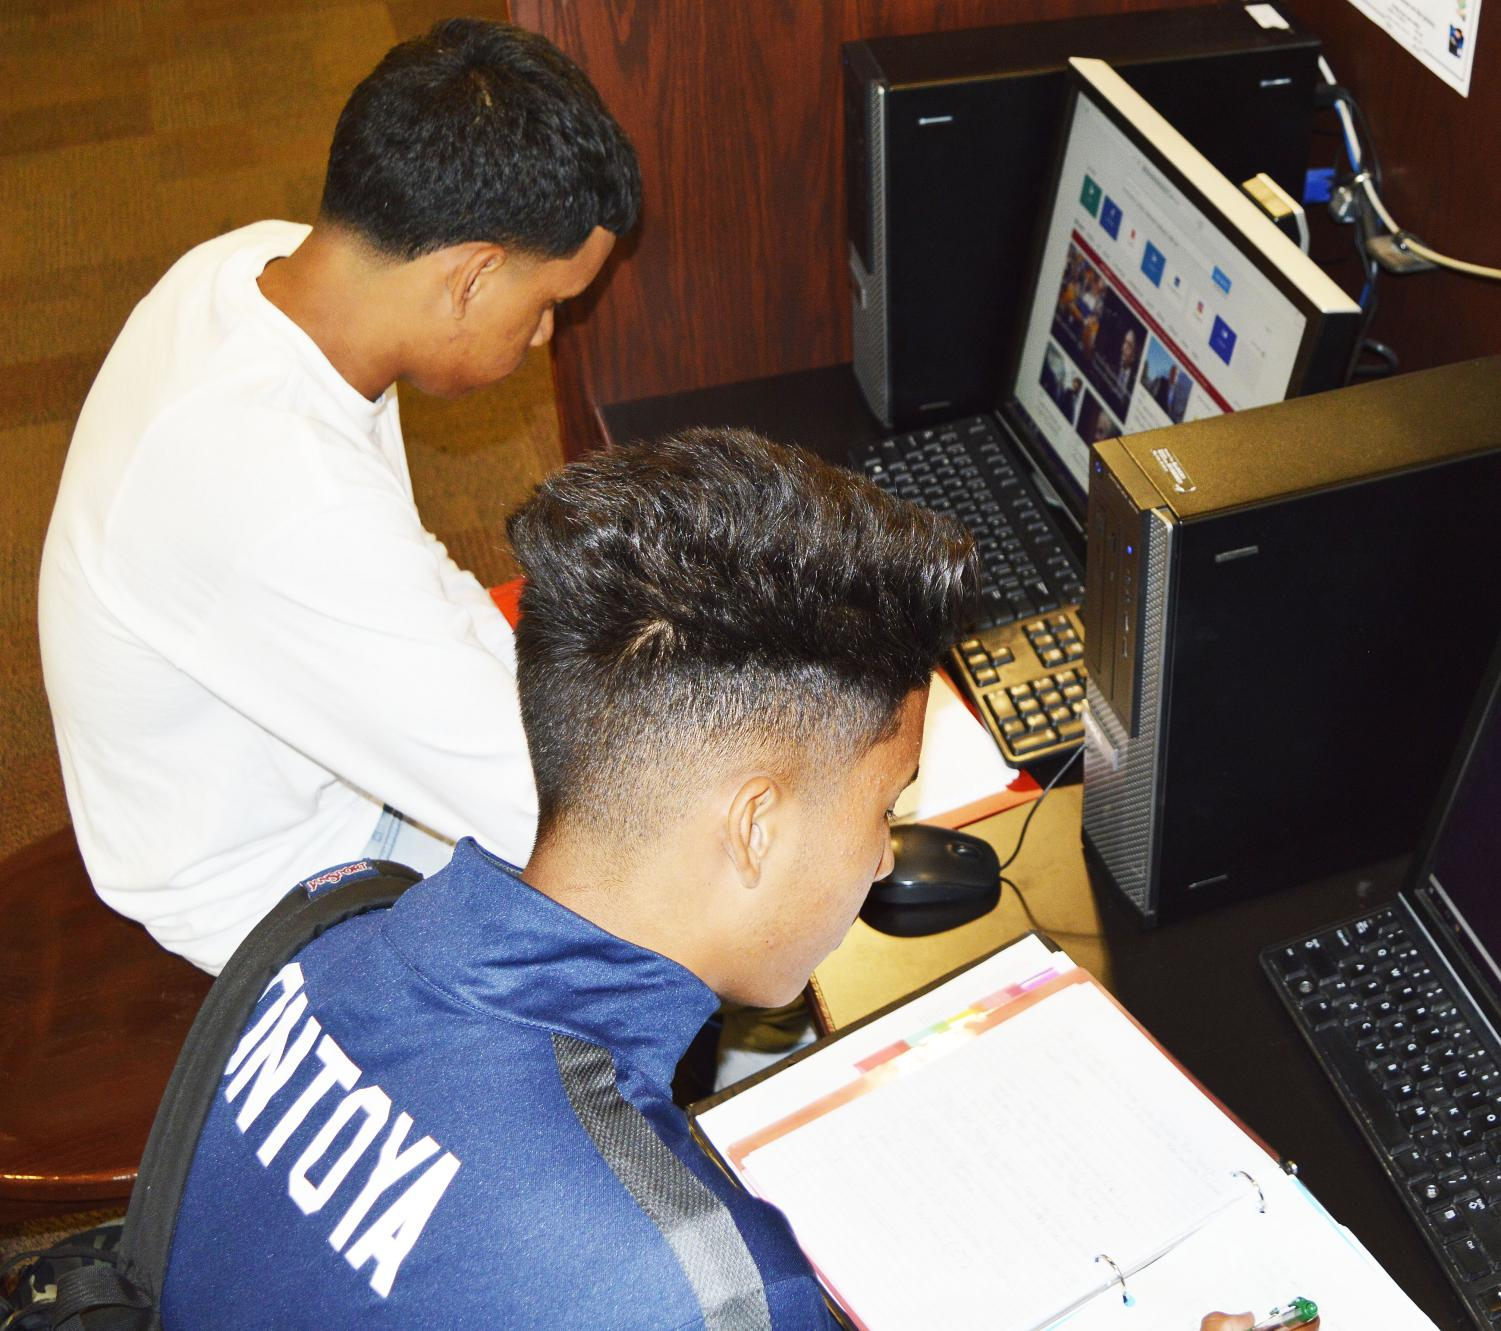 Soccer players Franklin Montoya (right) and Rafael Zuniga (left) putting time aside to study.